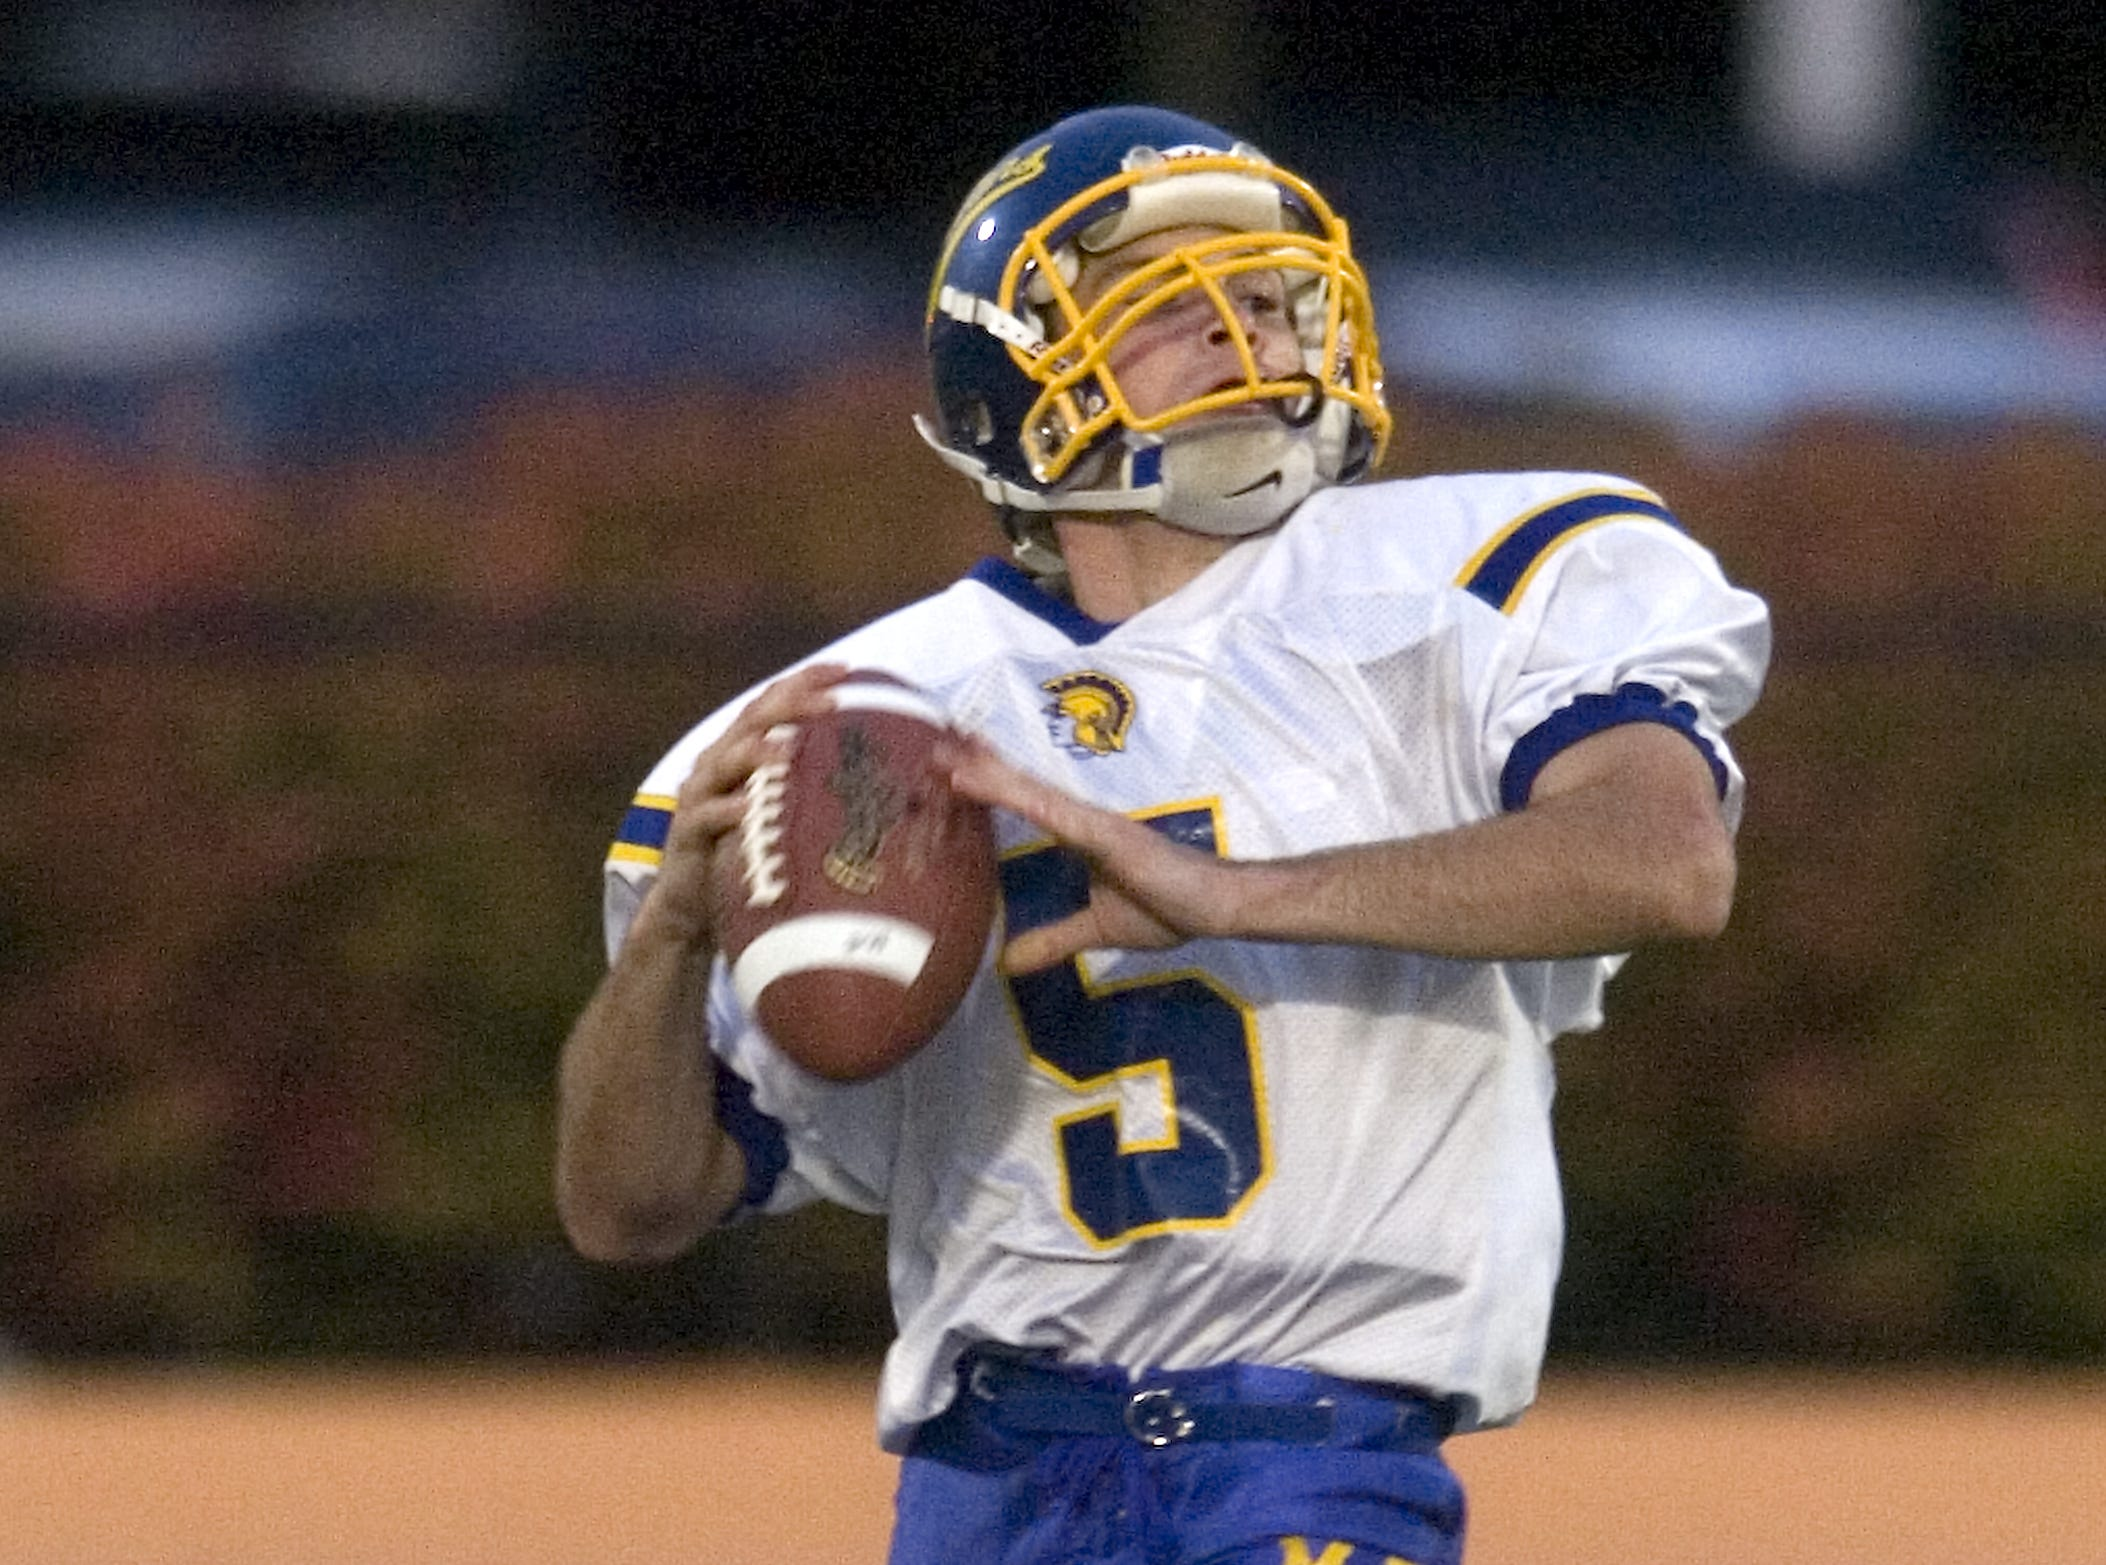 Maine-Endwell's Joey Powell in the first quarter of a 2008 game against Union-Endicott at Ty Cobb Stadium.